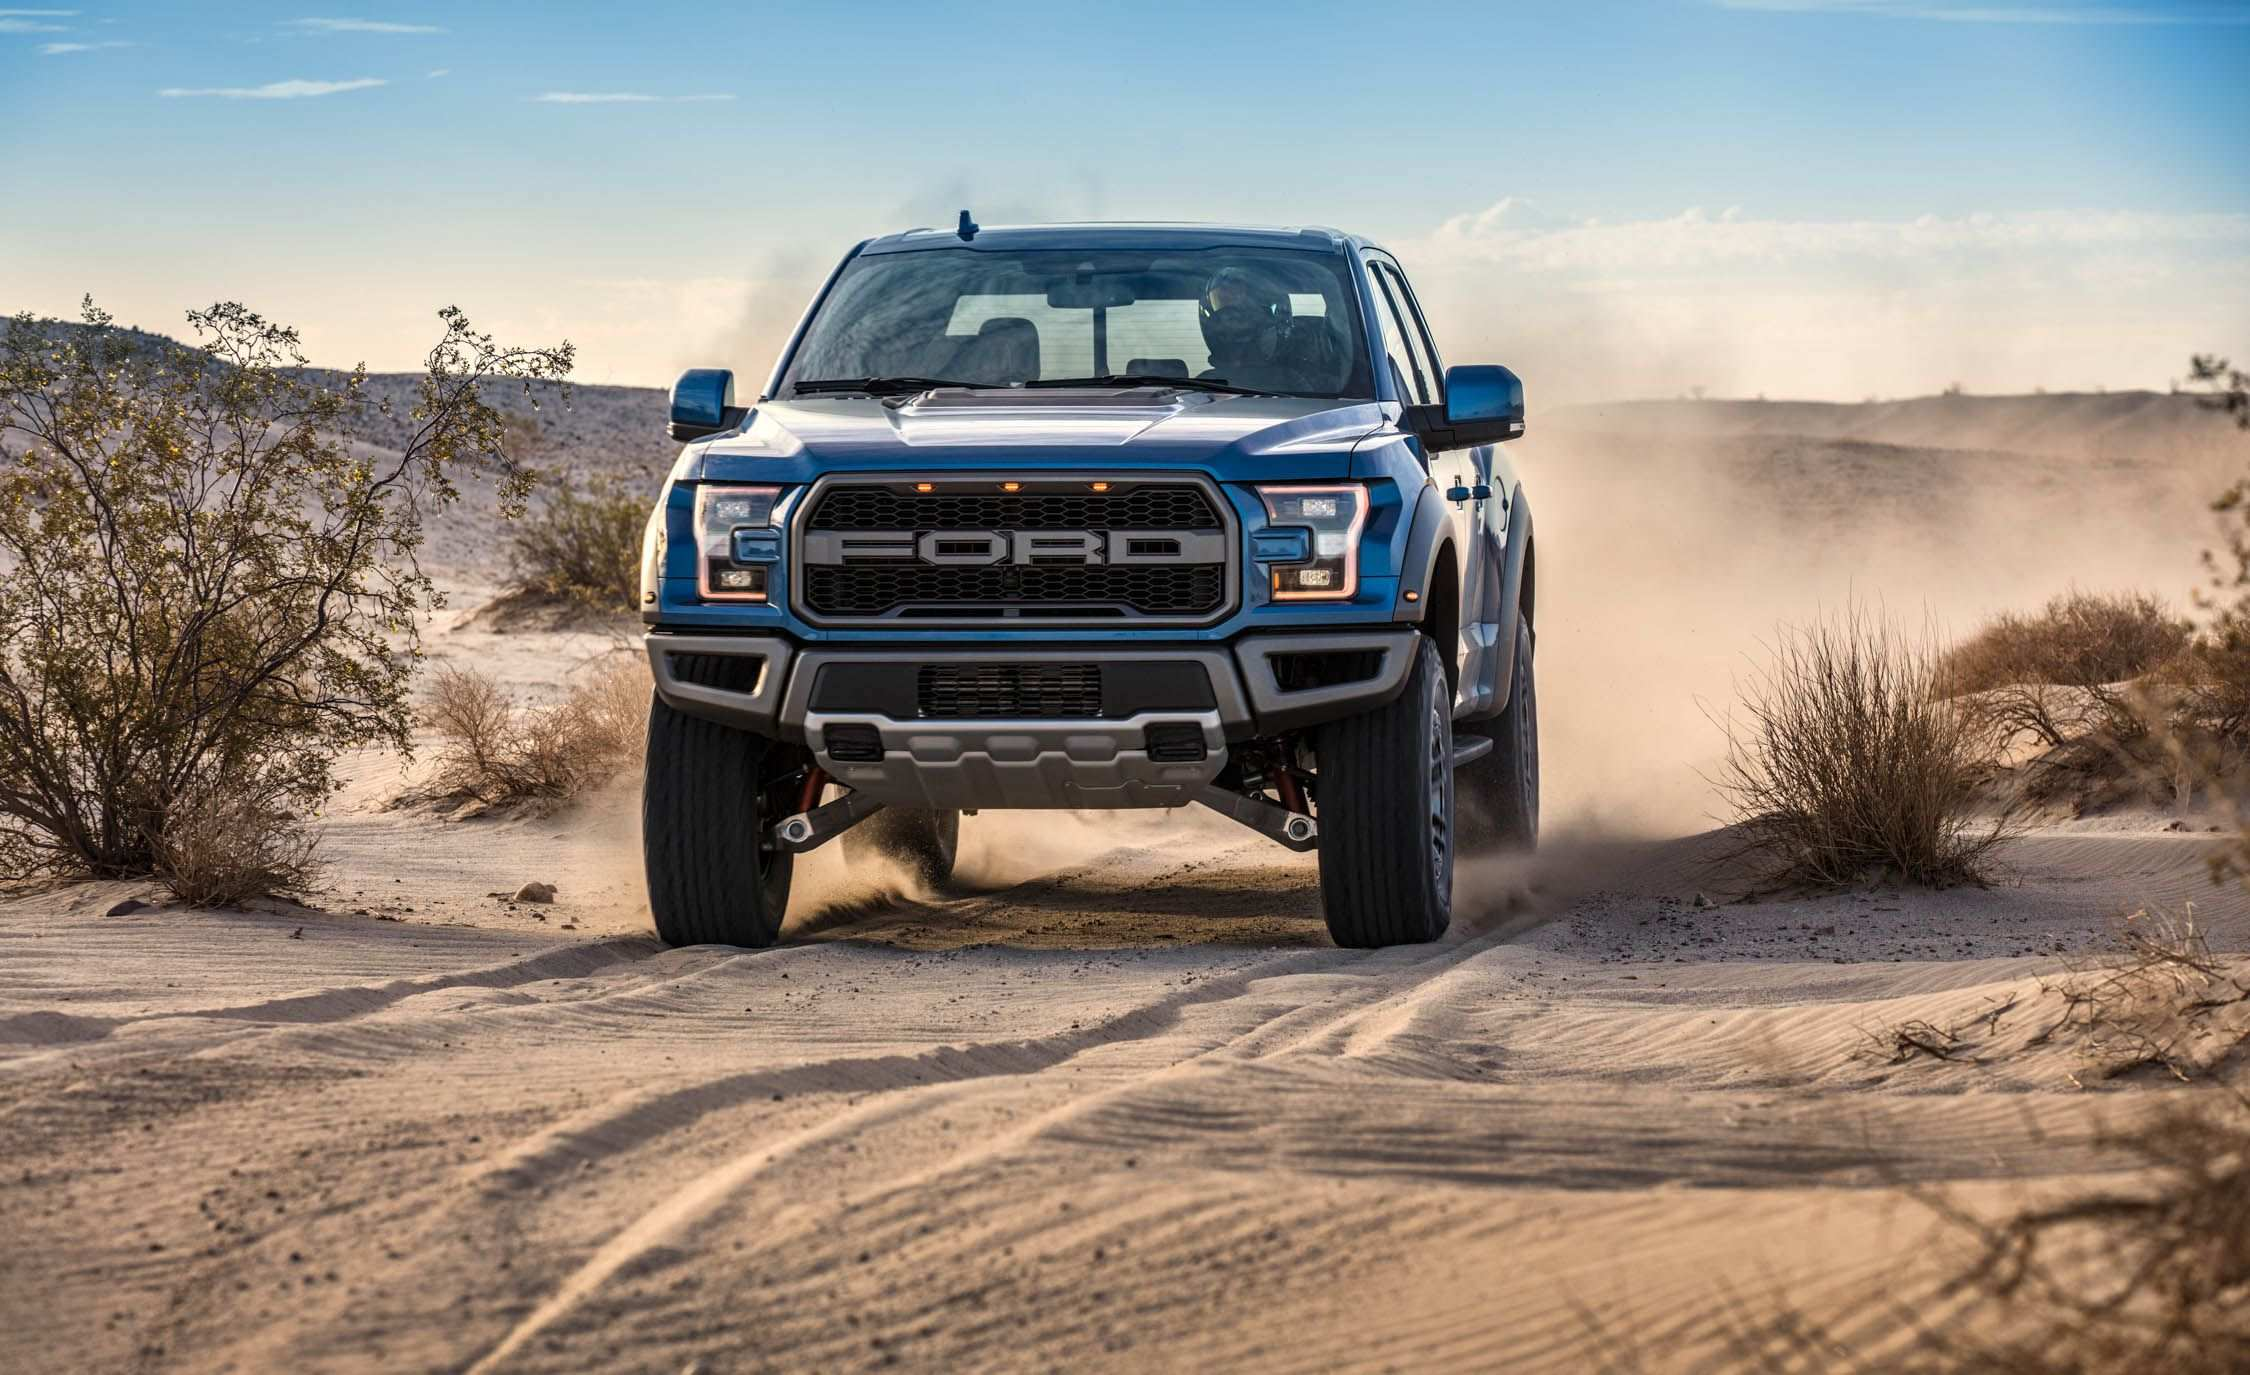 74 All New Ford Velociraptor 2019 Spesification Style for Ford Velociraptor 2019 Spesification